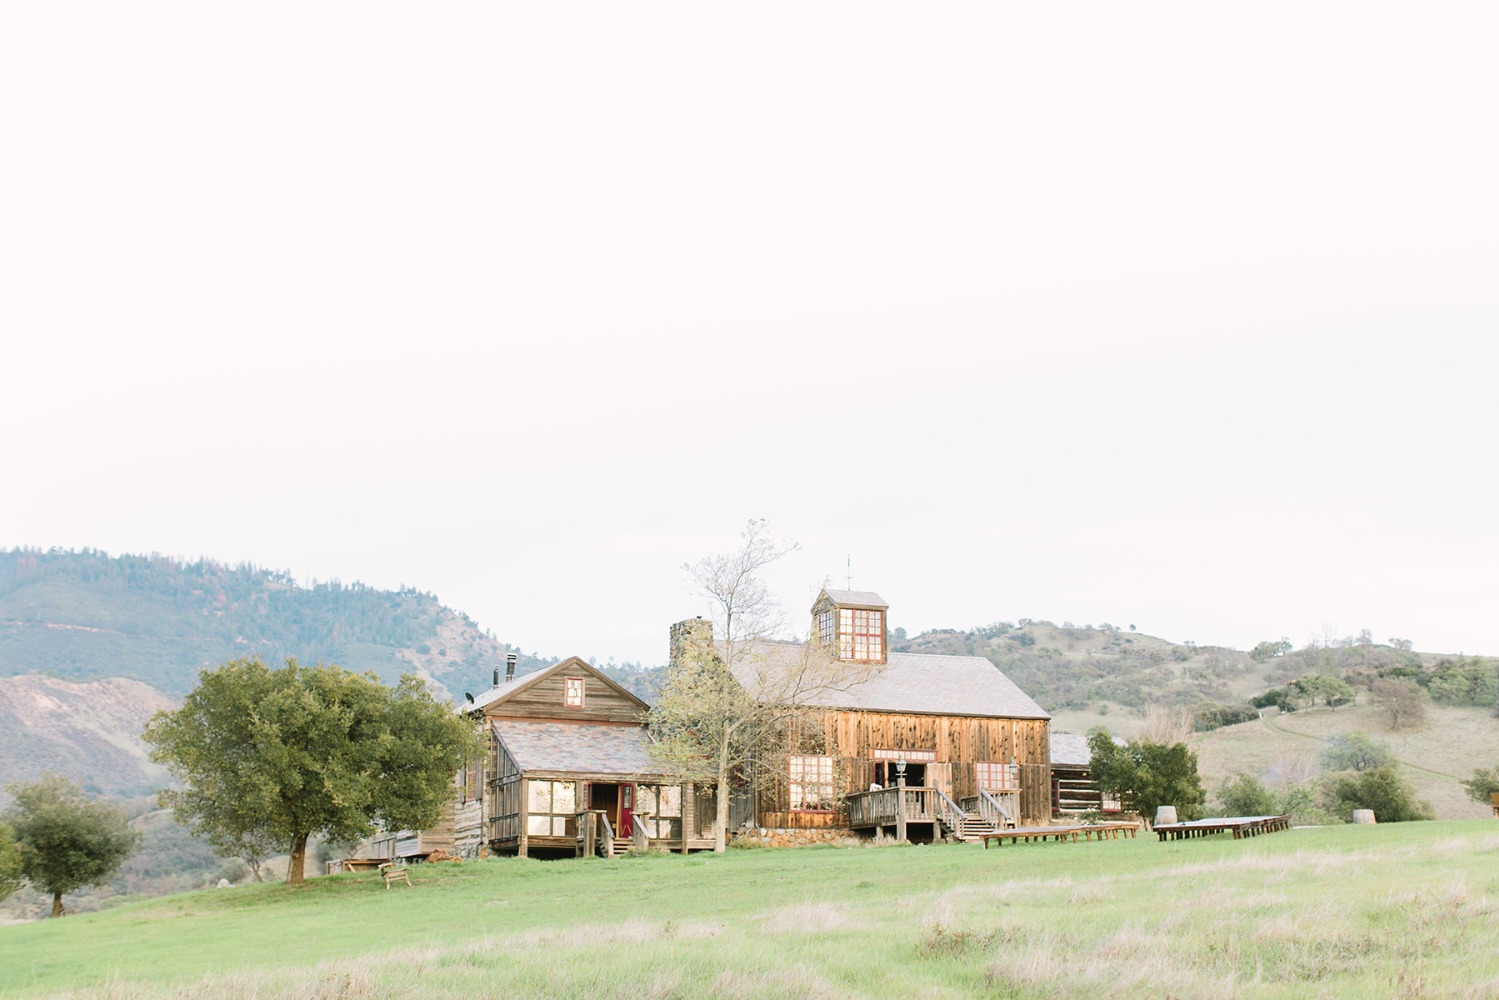 Figueroa Mountain Farmhouse